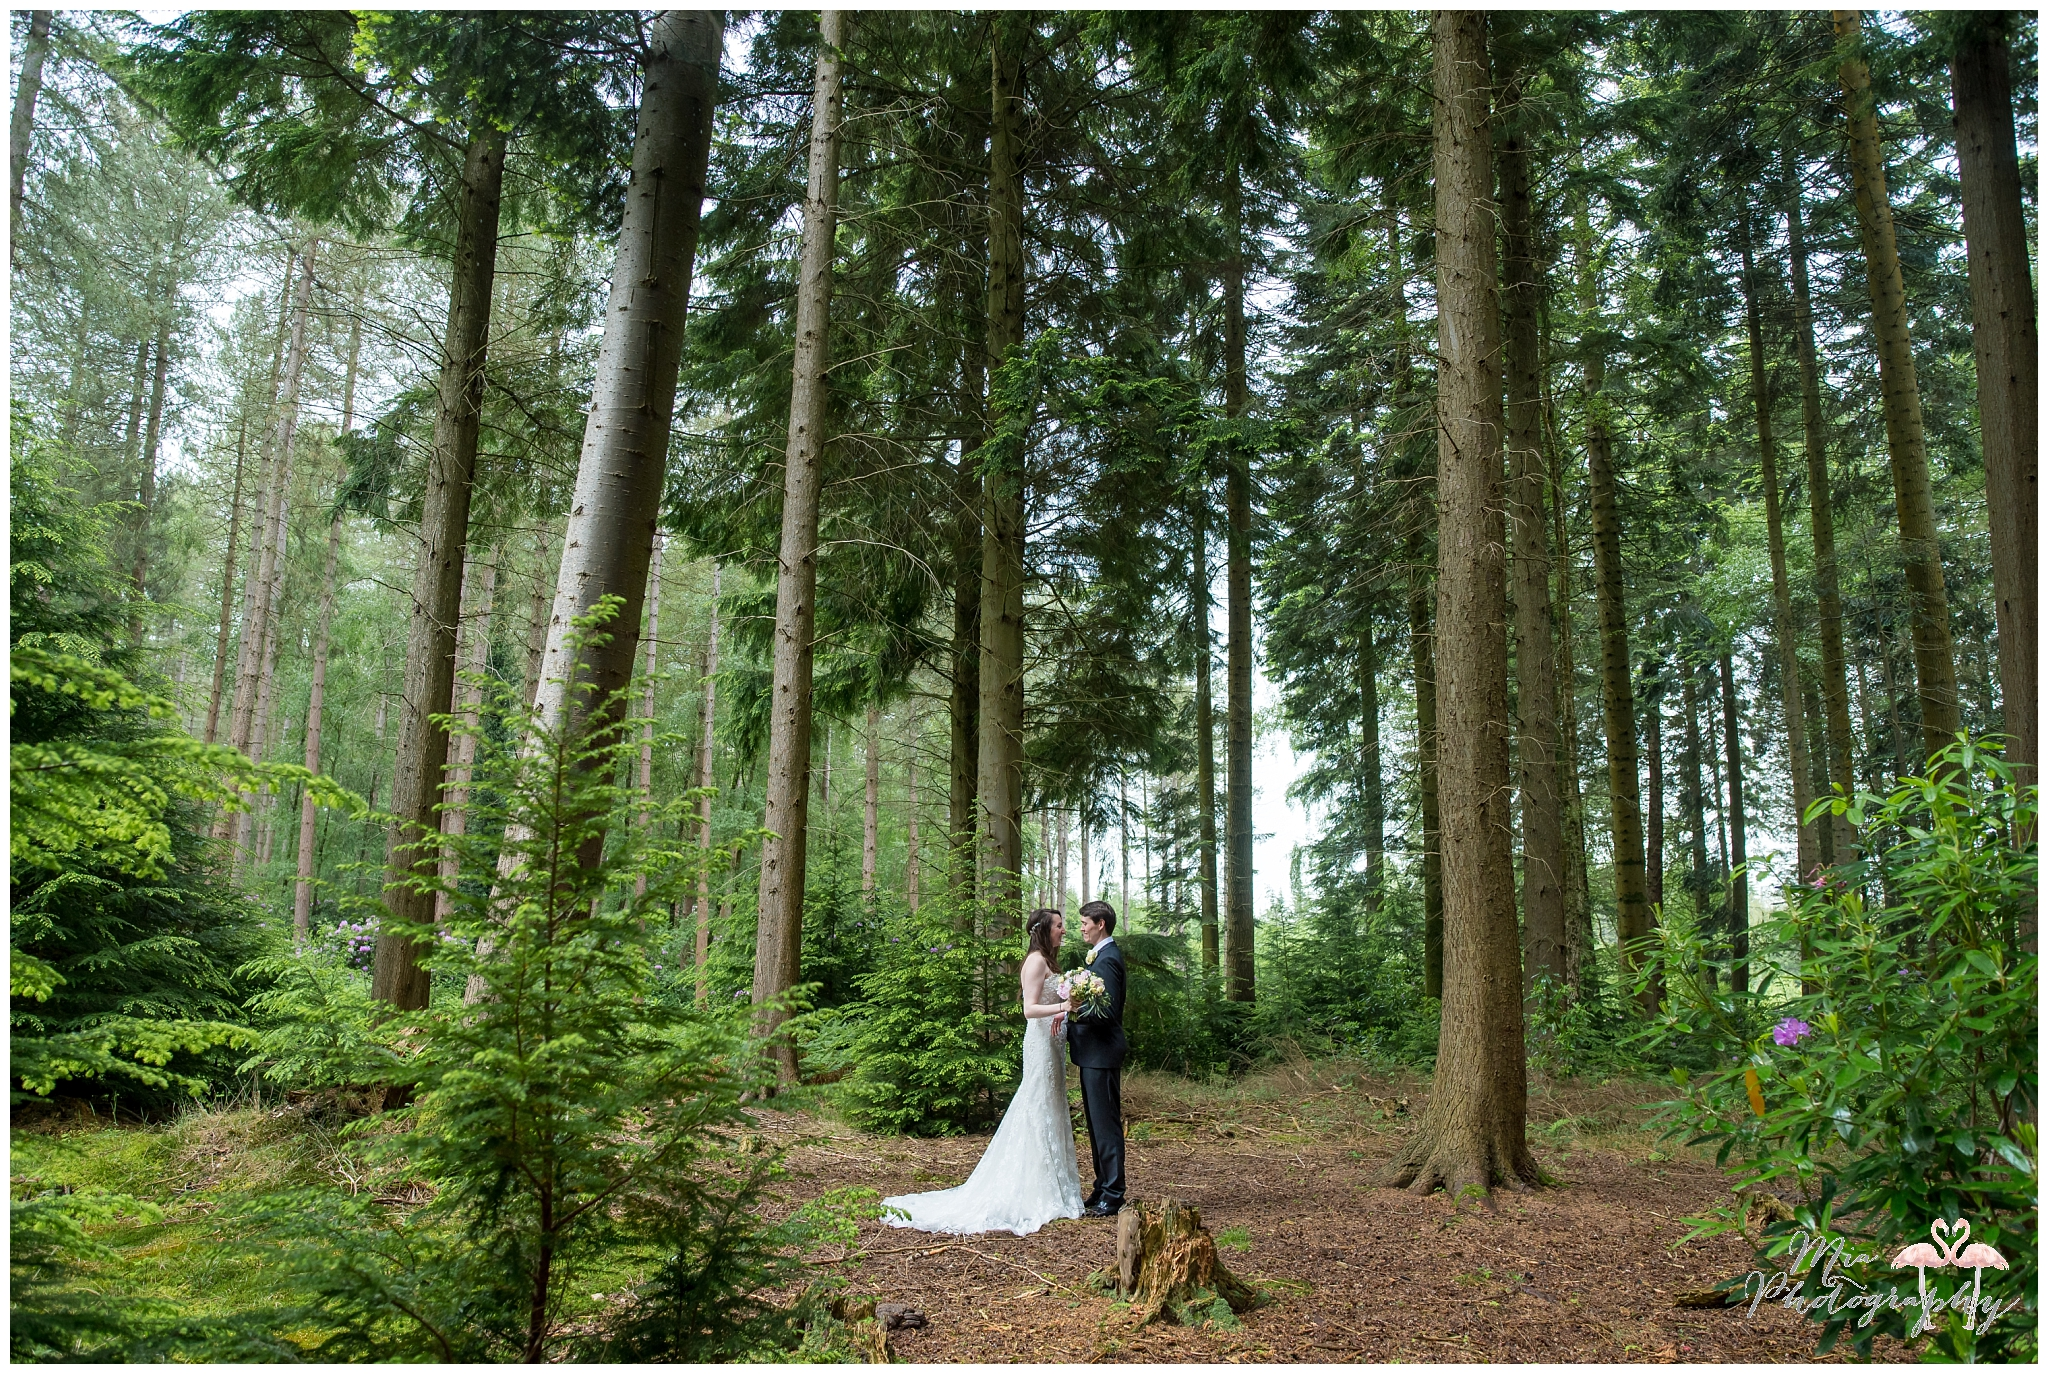 Weddings in the Woods in The New Forest